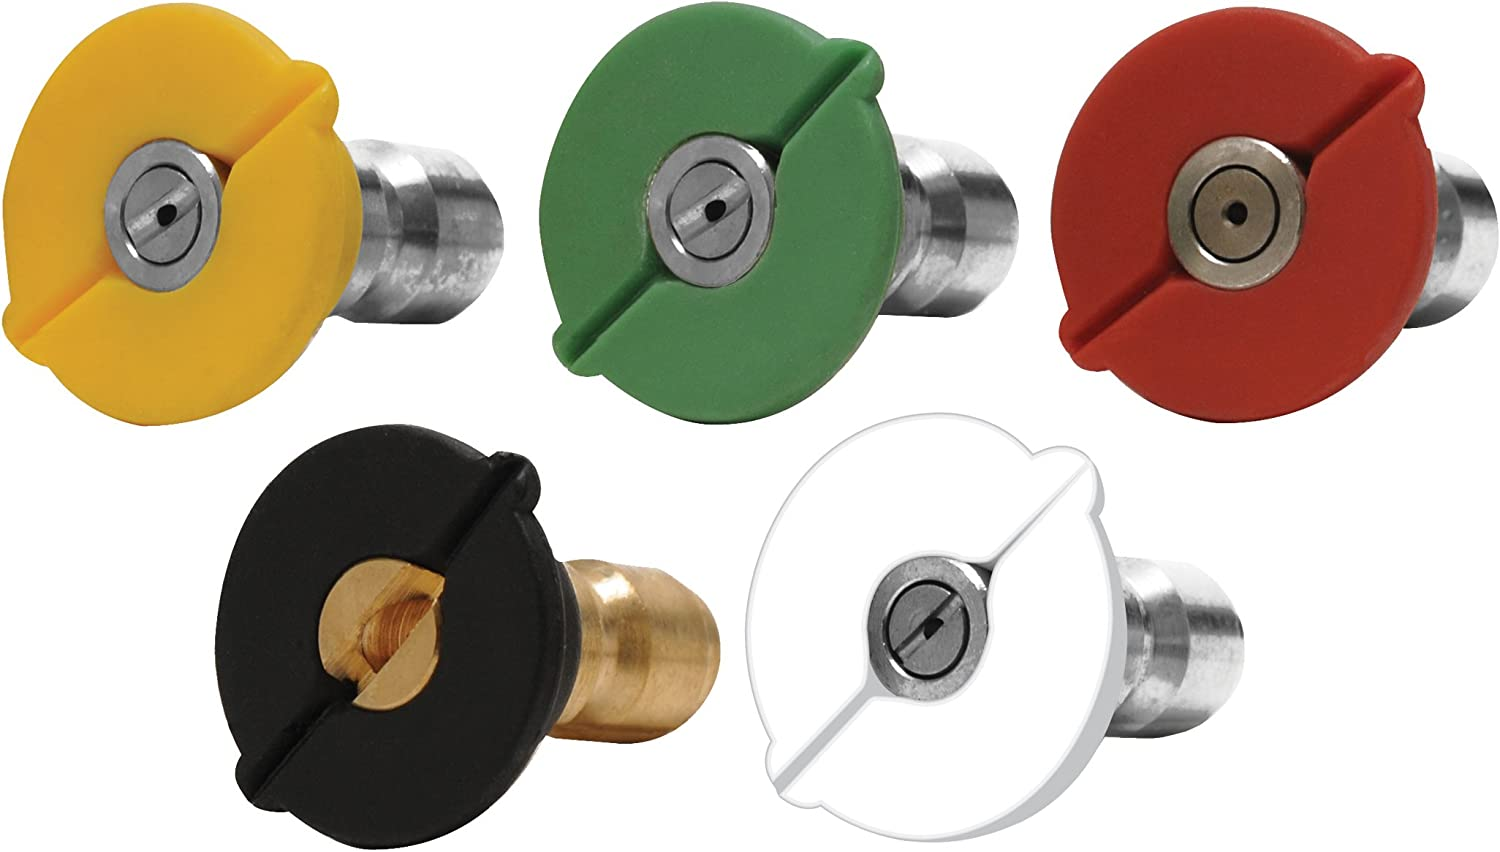 Hot Max 29015 Quick Connect Pressure Size 4.0 5- Washer Manufacturer unisex direct delivery Nozzle